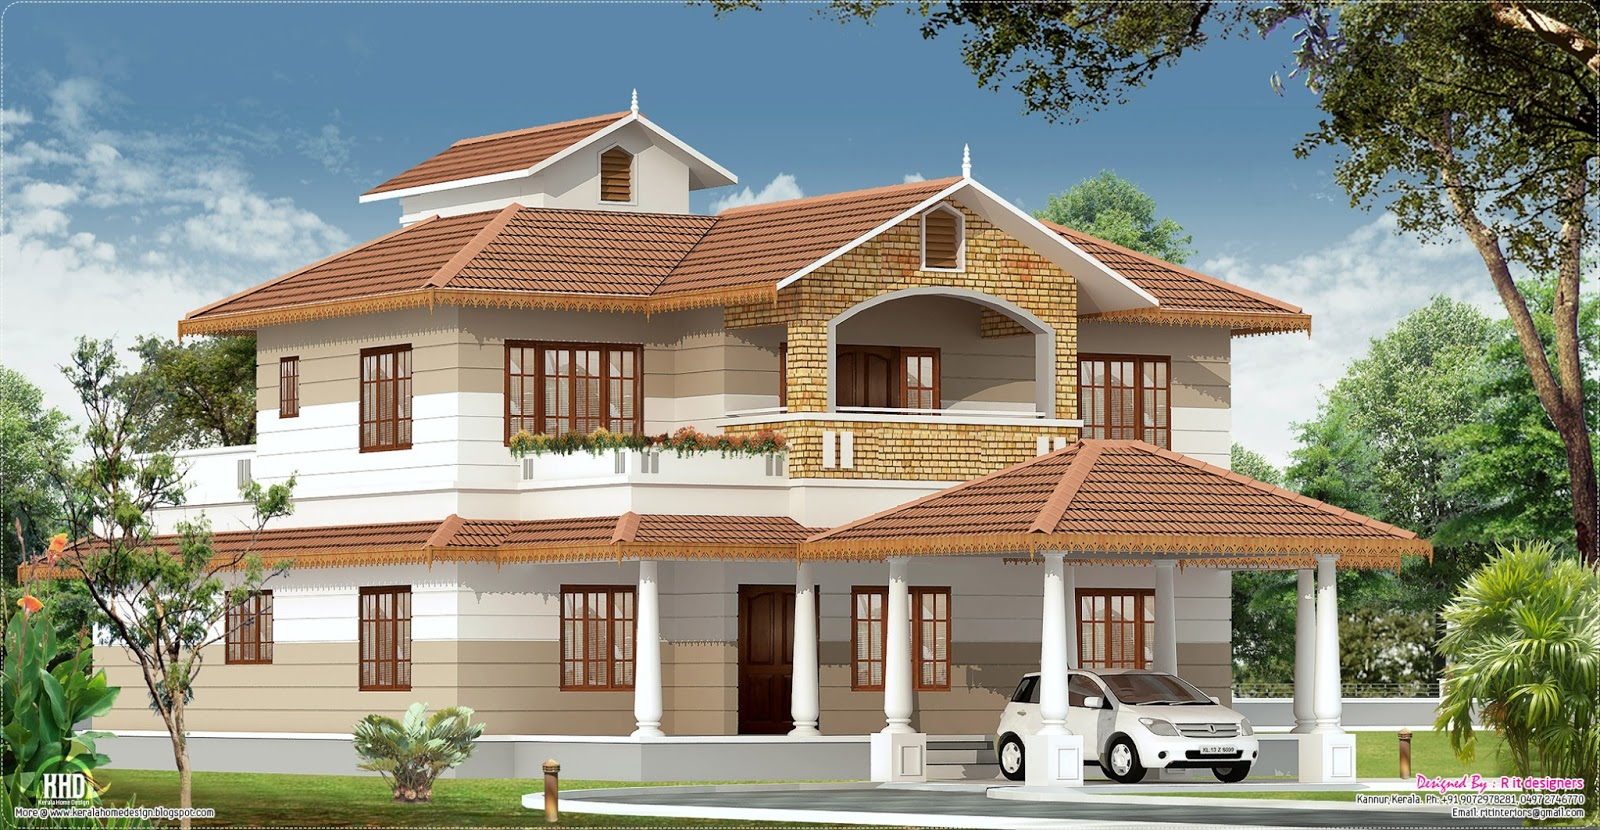 2700 kerala home with interior designs kerala for New home designs kerala